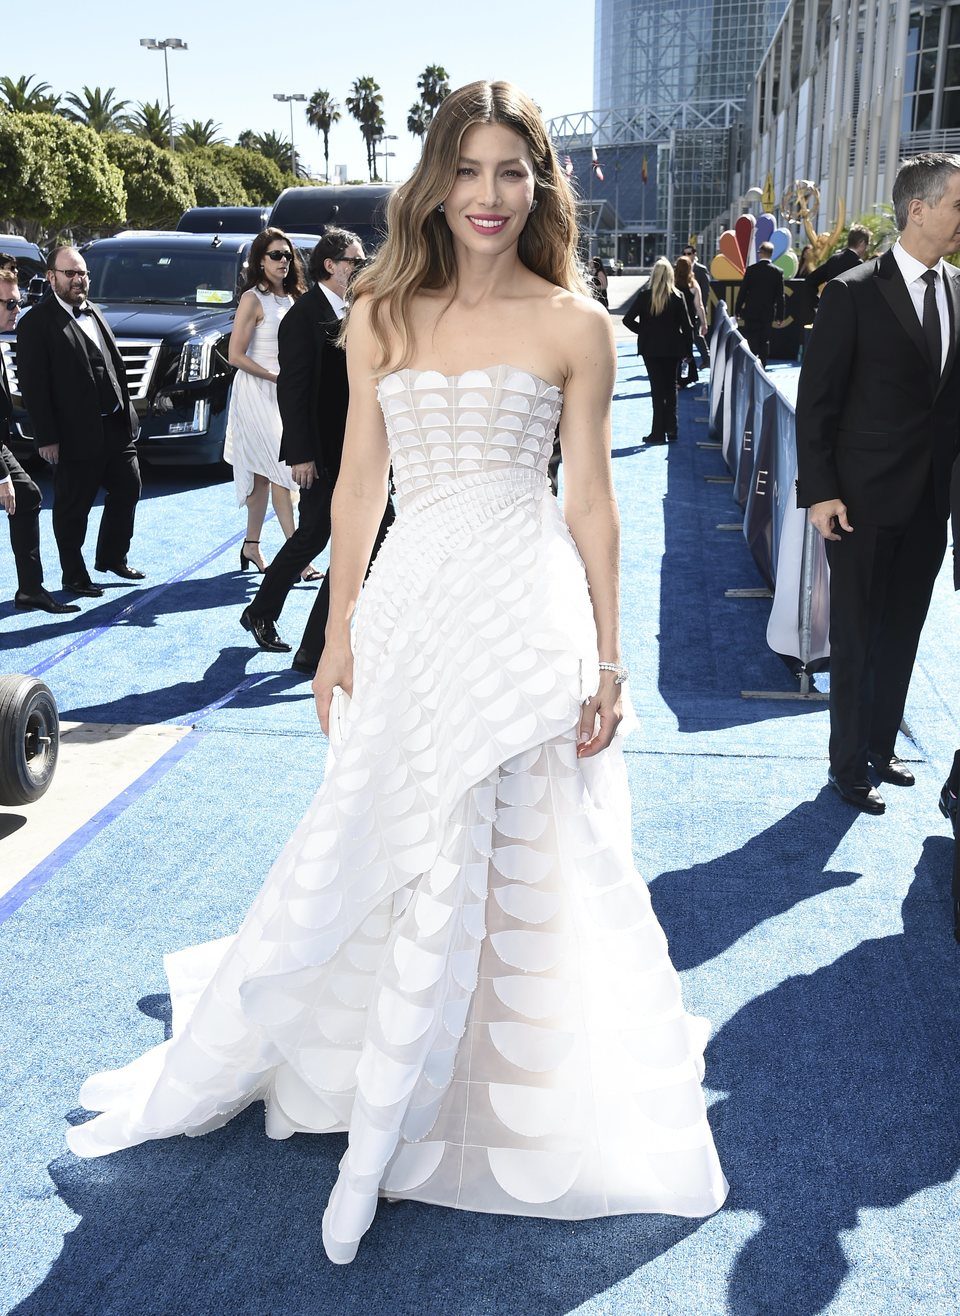 Jessica Biel at the Emmys 2018 red carpet